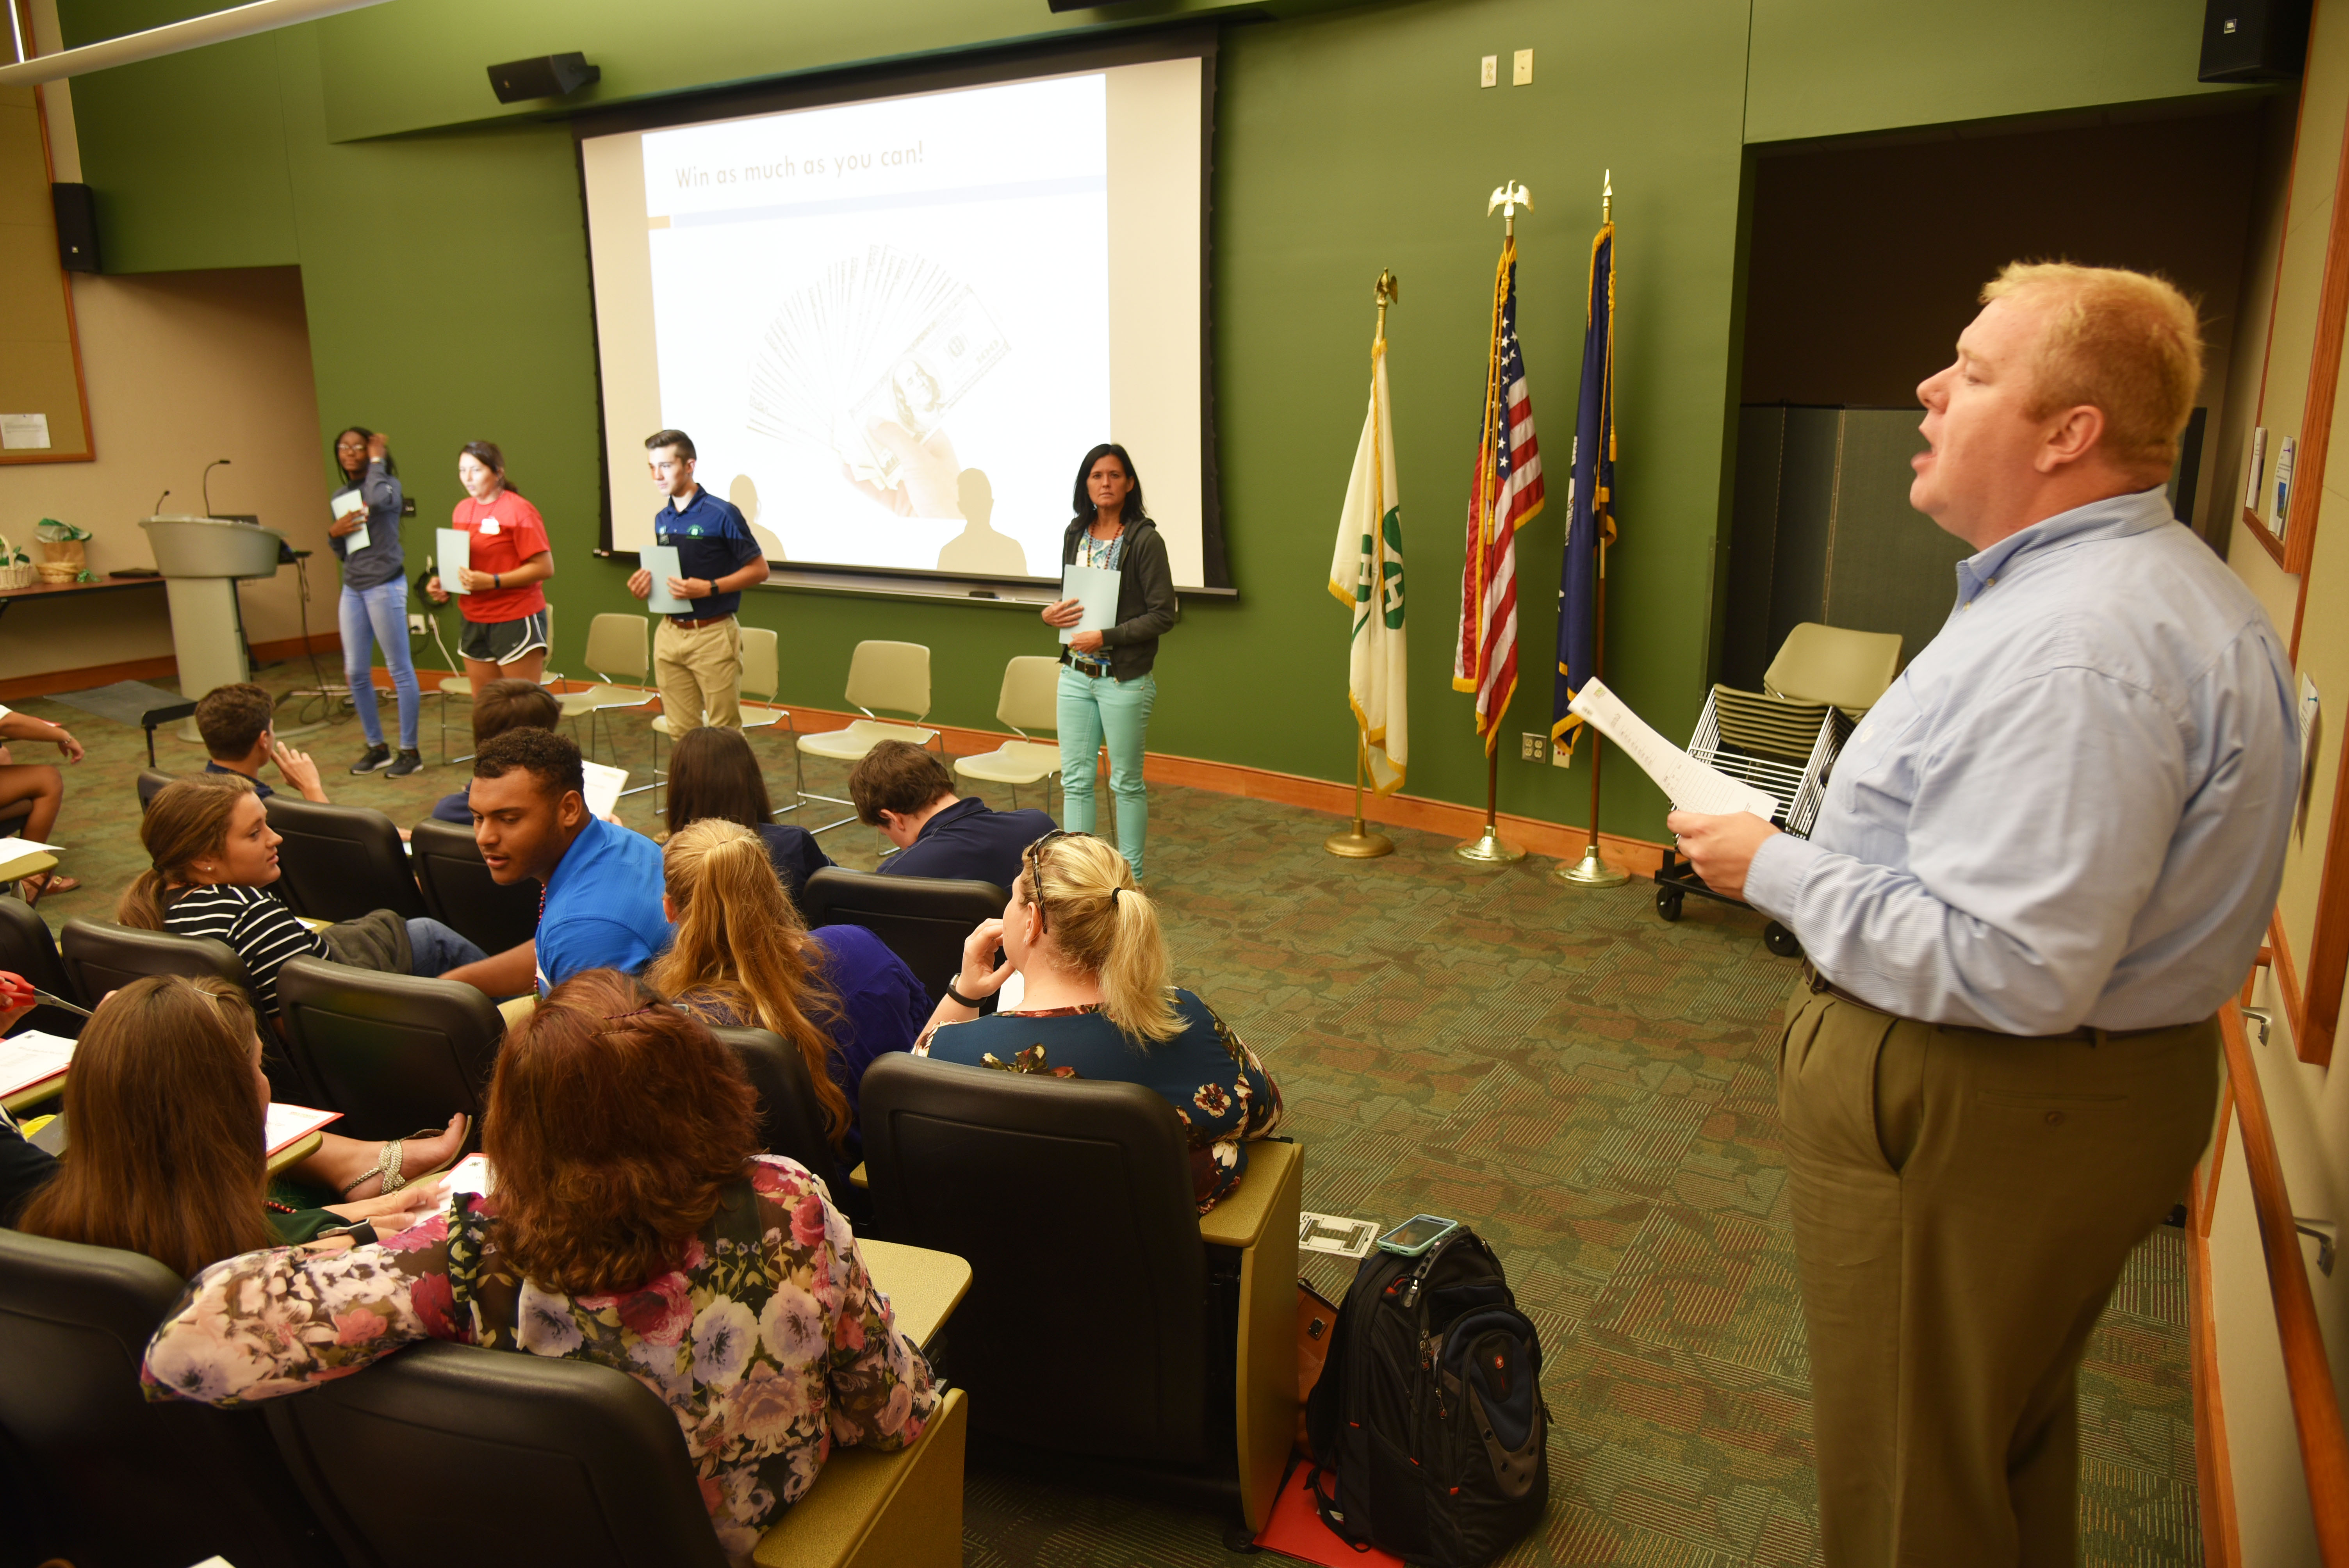 4-H leaders hear how to spice up their programs